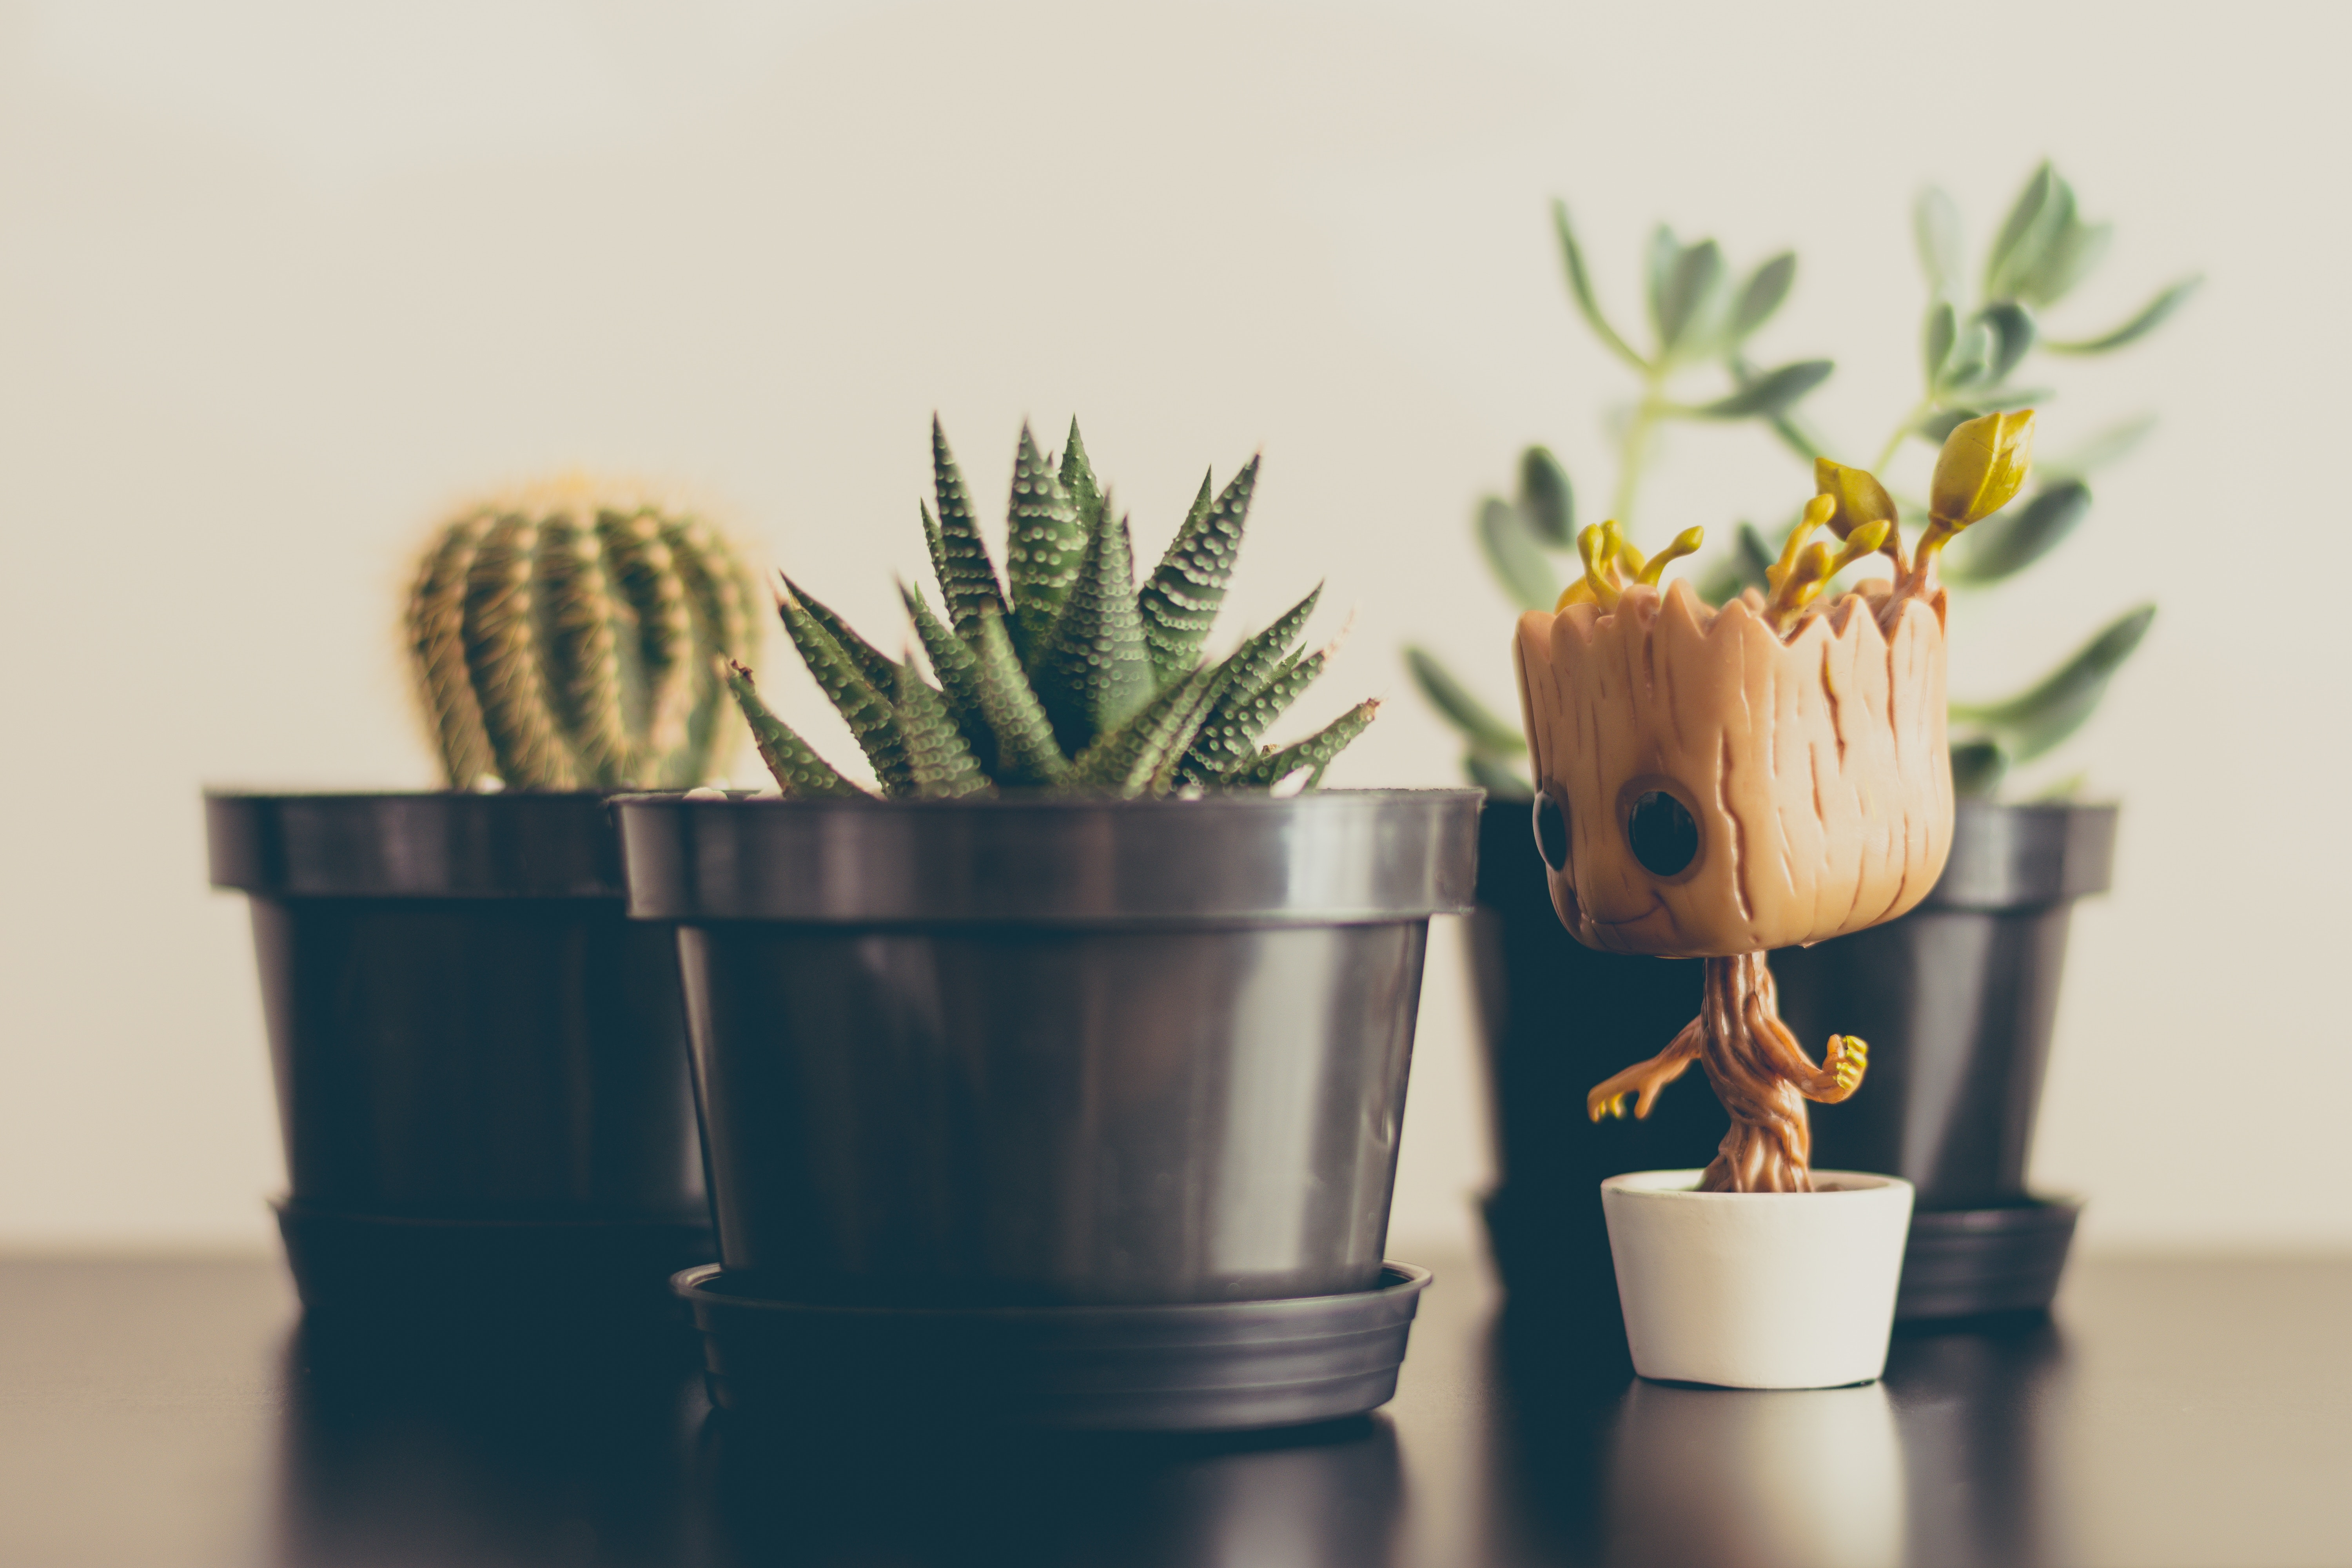 Baby-Groot-Hanging-Out-With-Succulent-Friends-1920-X-1080-wallpaper-wp3602902